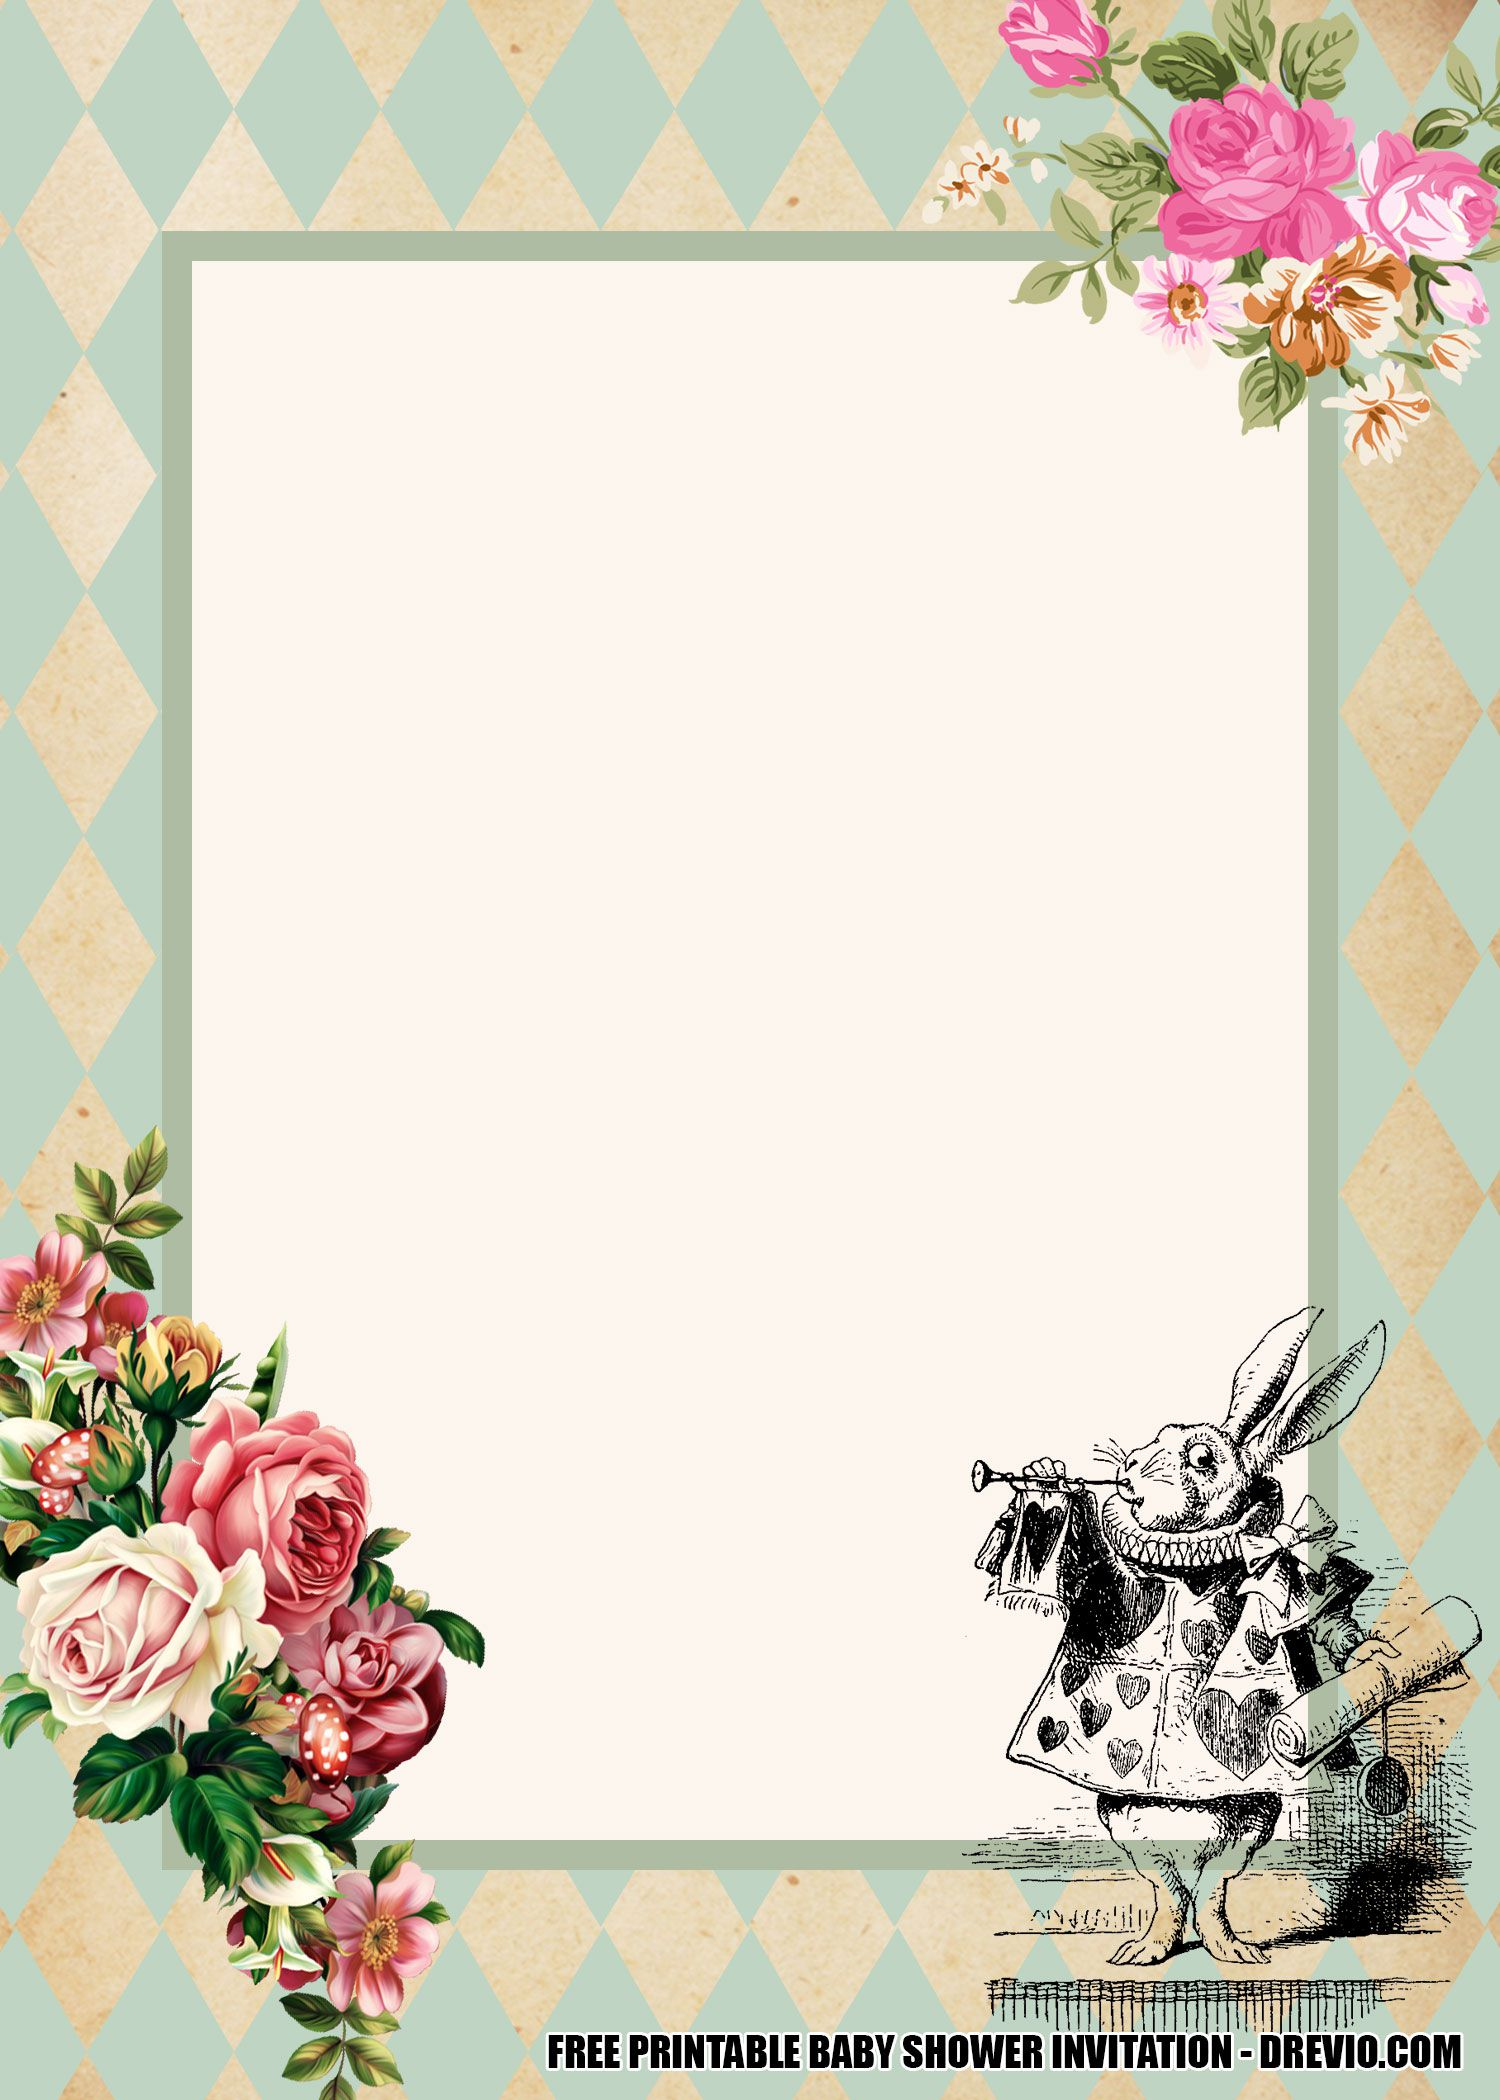 007 Formidable Alice In Wonderland Invite Template Highest Quality  Party Invitation FreeFull